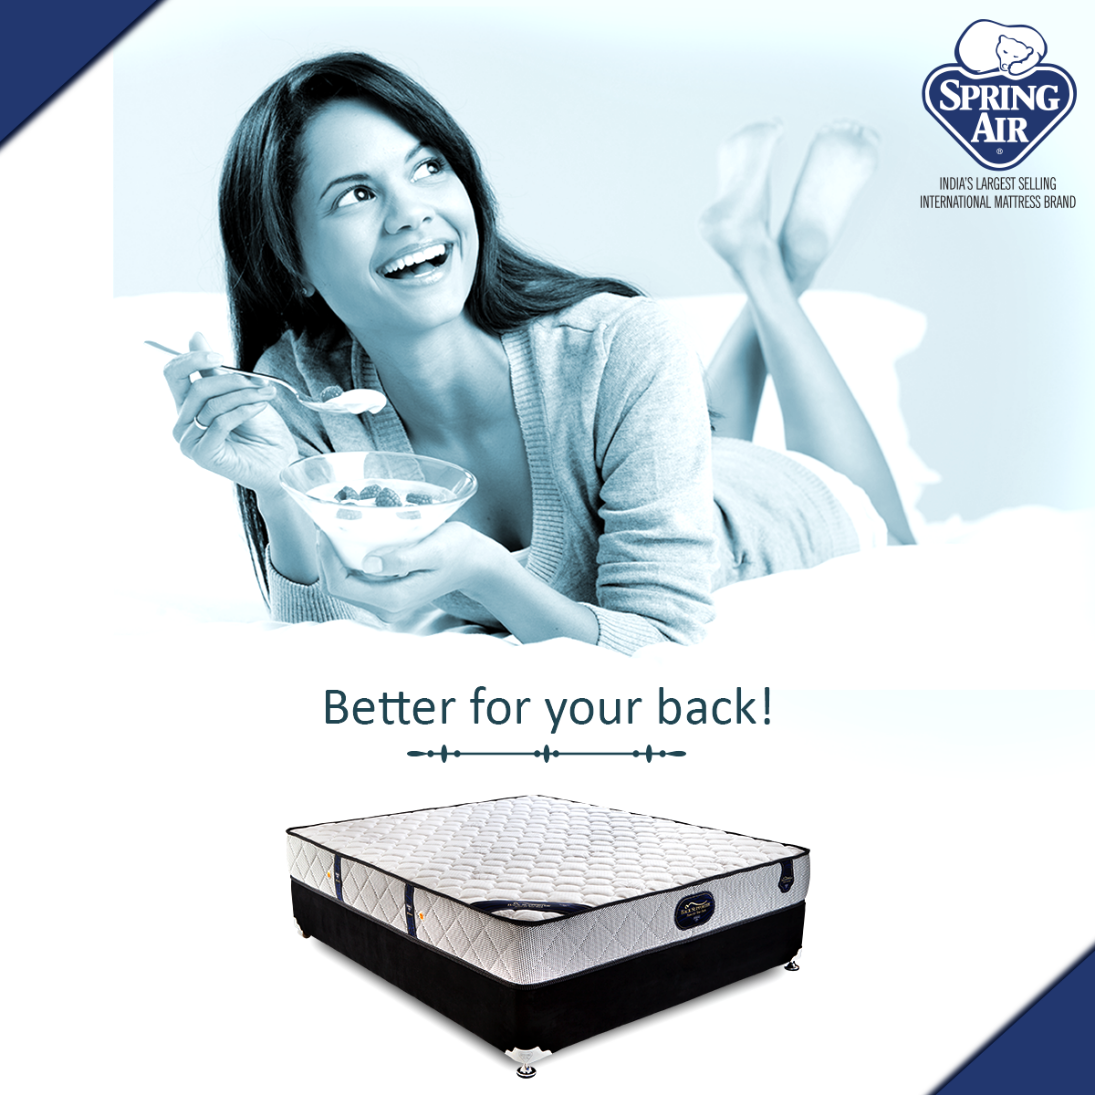 the back supporter mattress series offers you a combination of